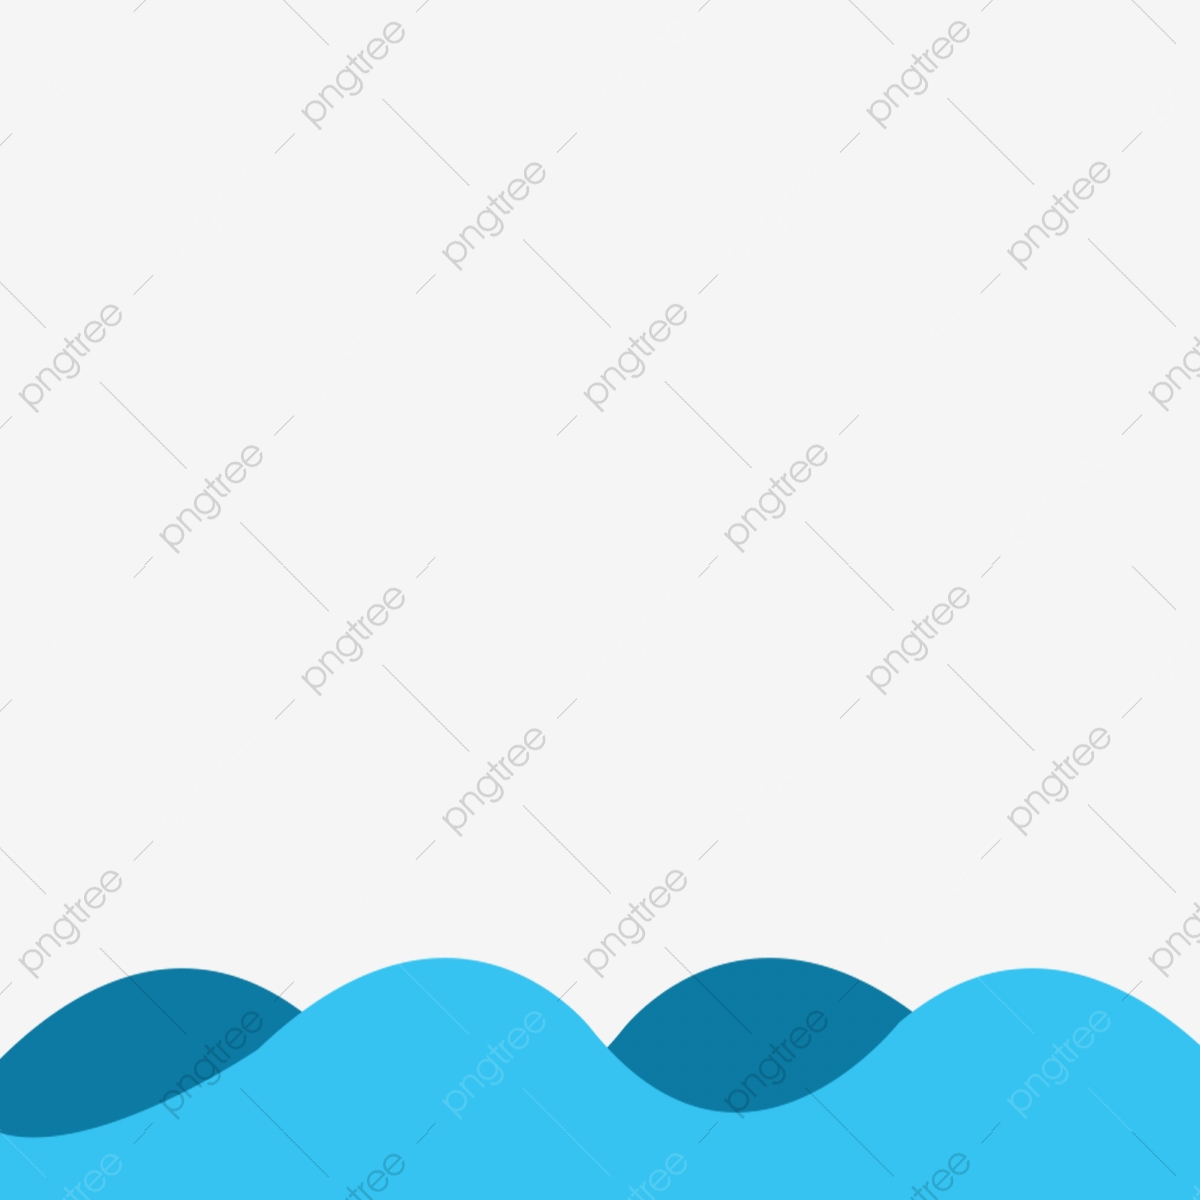 Sea Waves Png Vector Psd And Clipart With Transparent Background For Free Download Pngtree